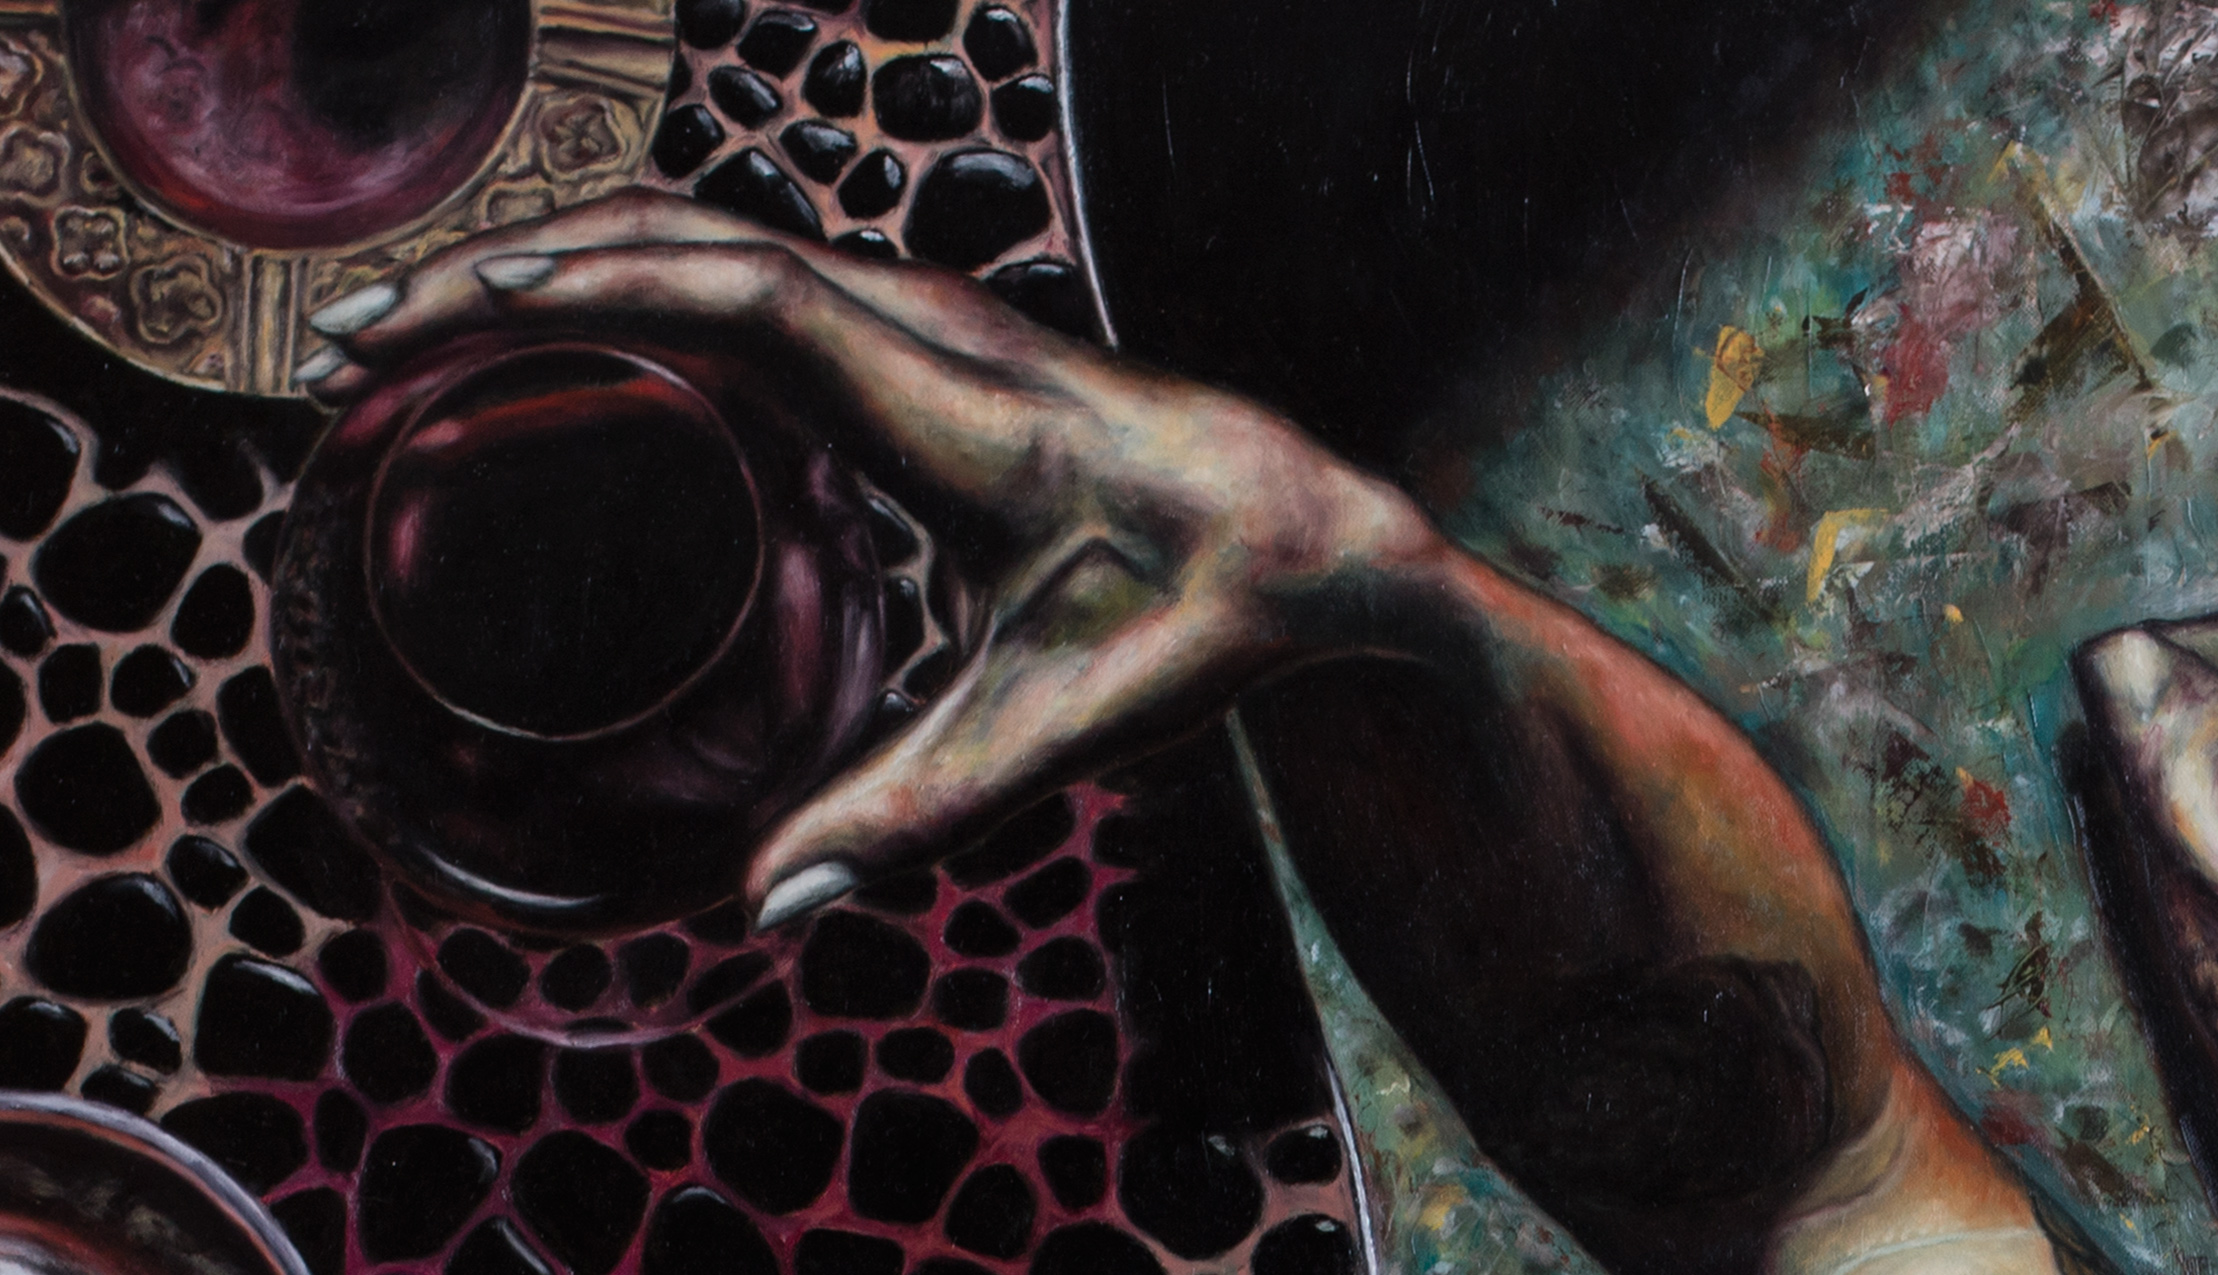 Self portrait as hedonist (detail)